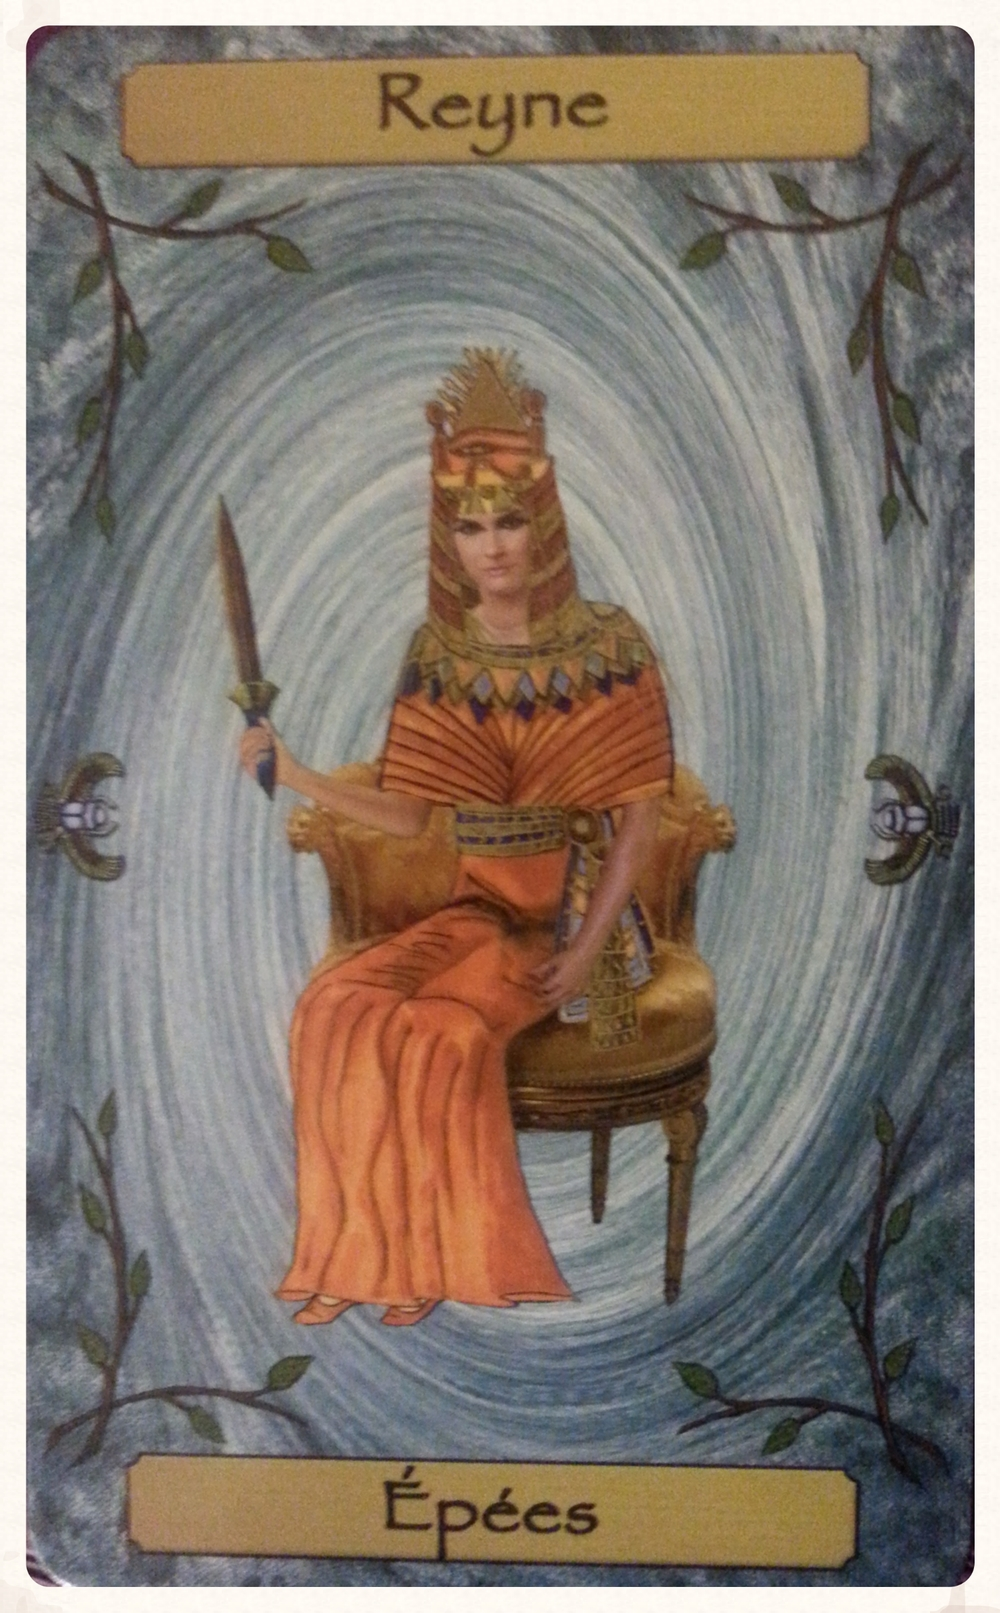 CARD FOR THE THEME OF THE WEEK           SEPTEMBER 12TH-18TH 2015     REYNE D'EPEE/ QUEEN OF SWORDS